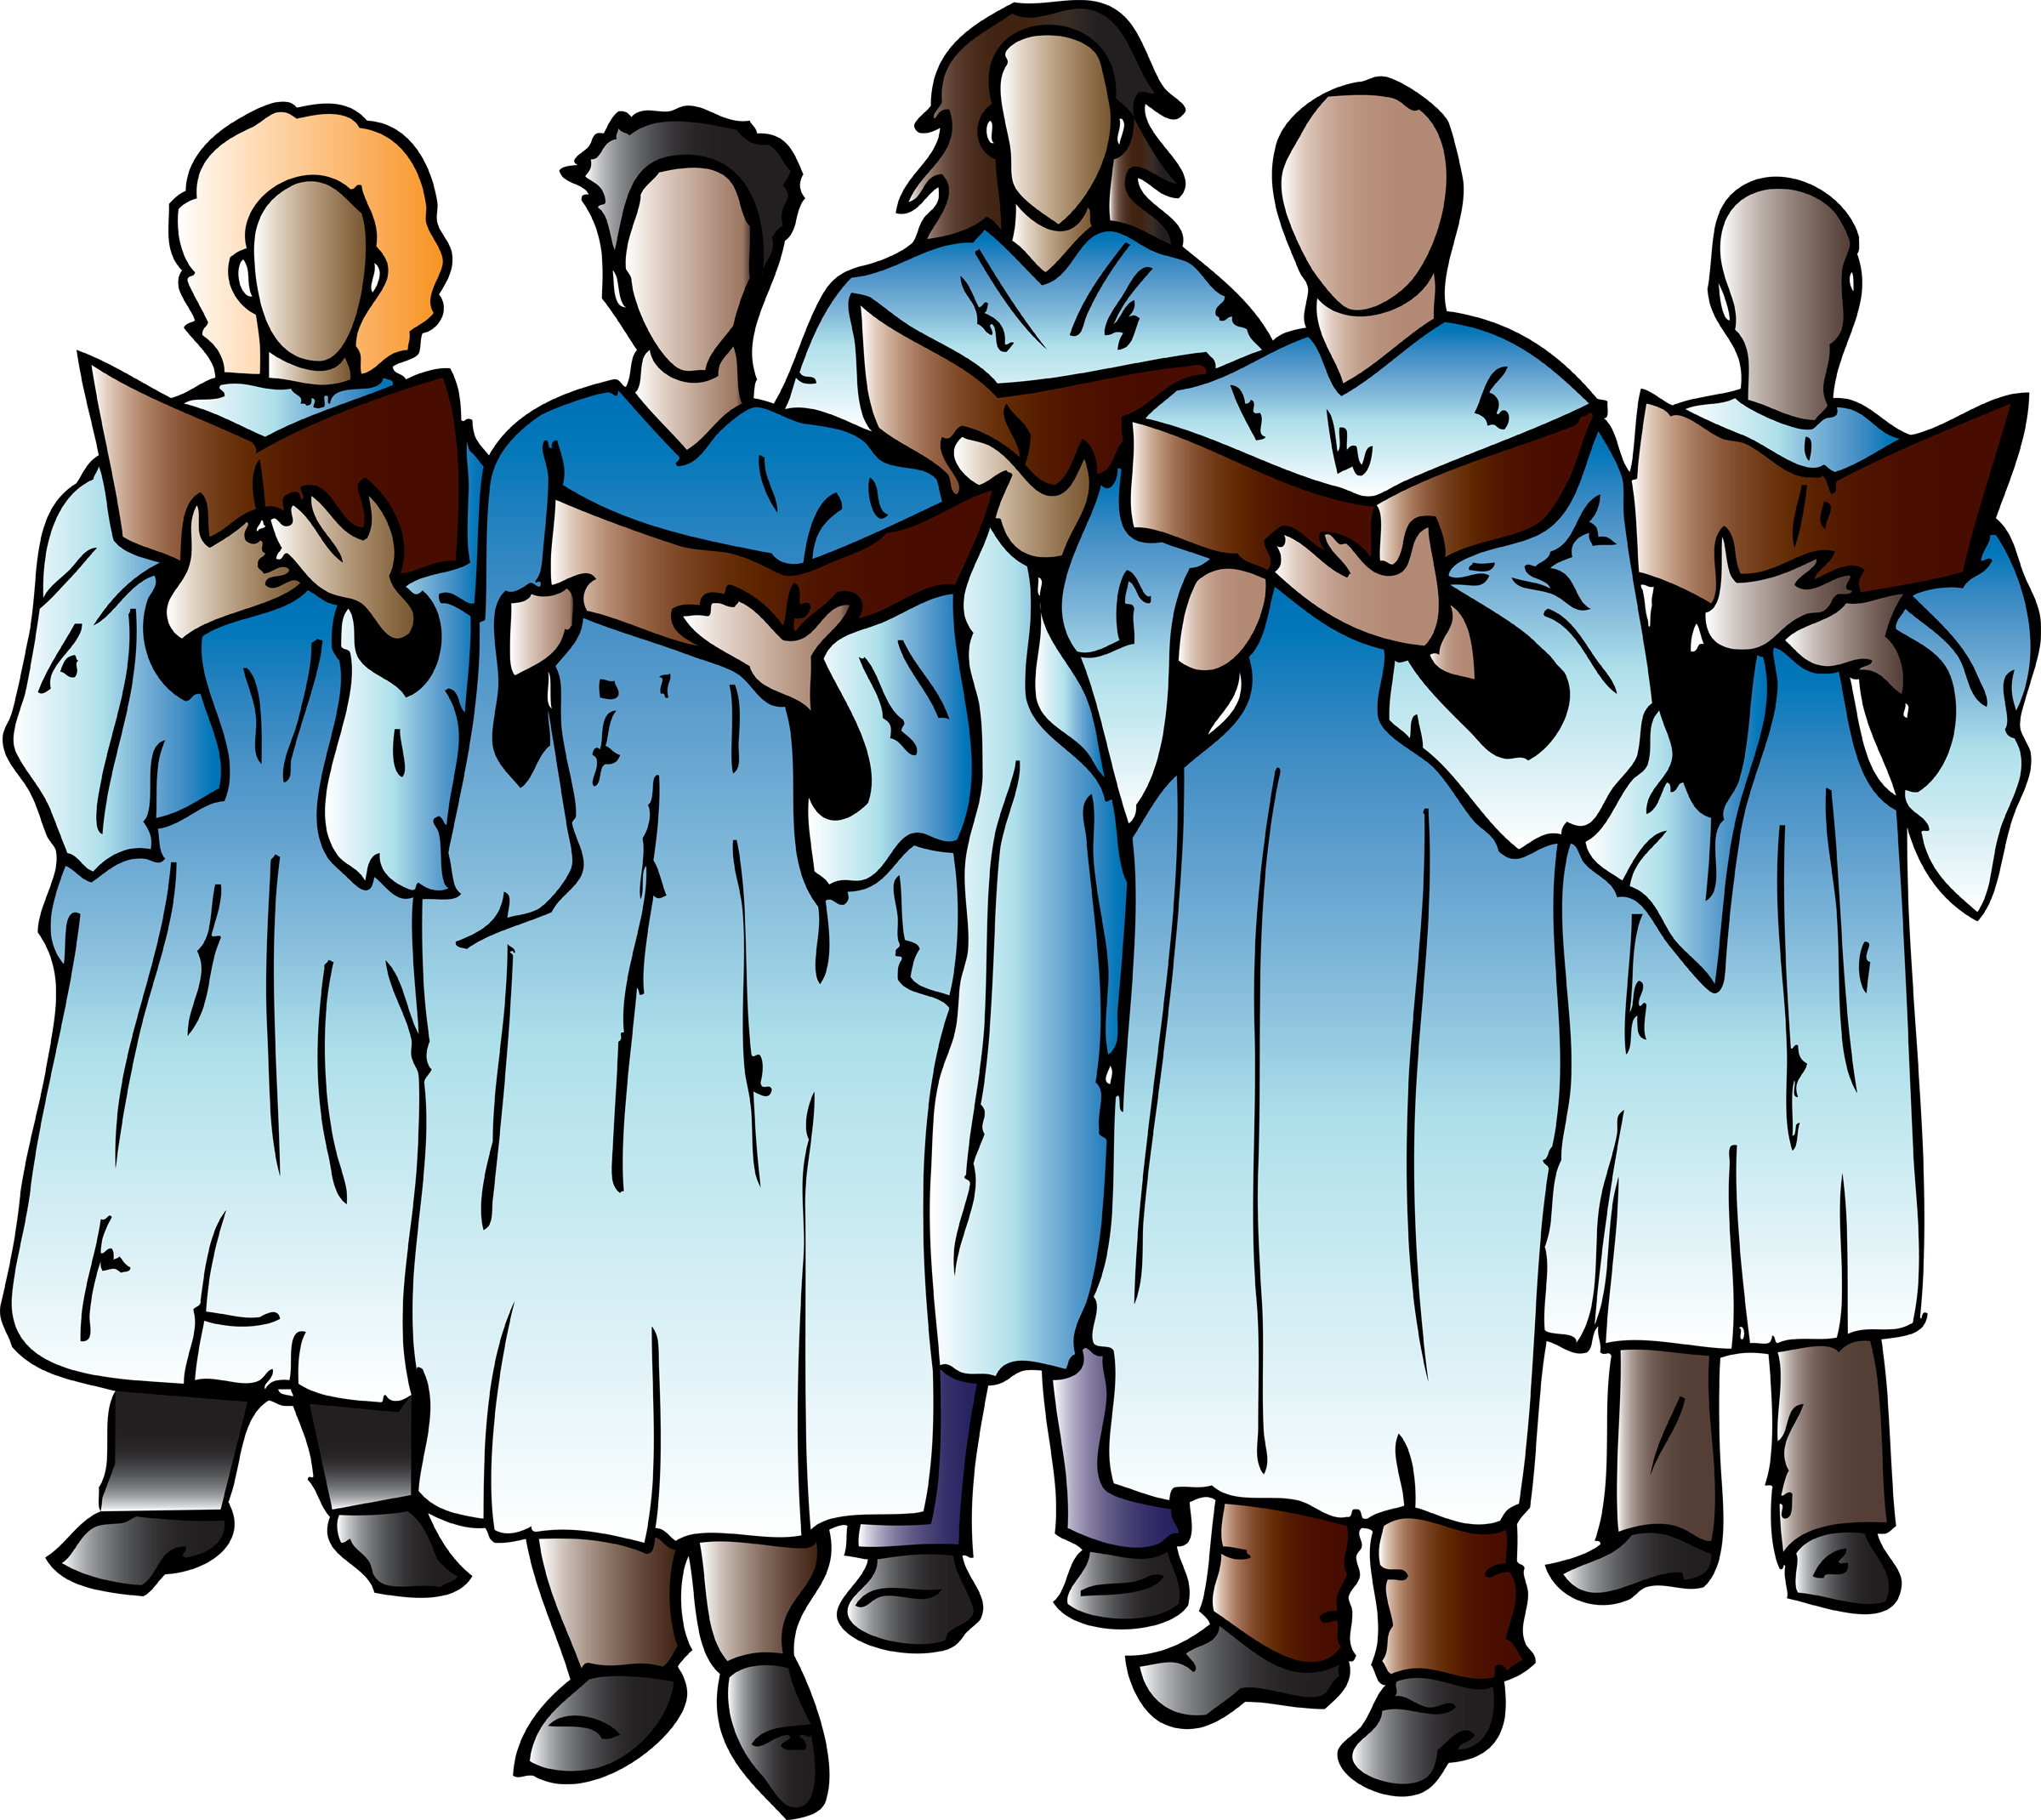 Gospel pictures clipart royalty free Free Gospel Singing Cliparts, Download Free Clip Art, Free Clip Art ... royalty free